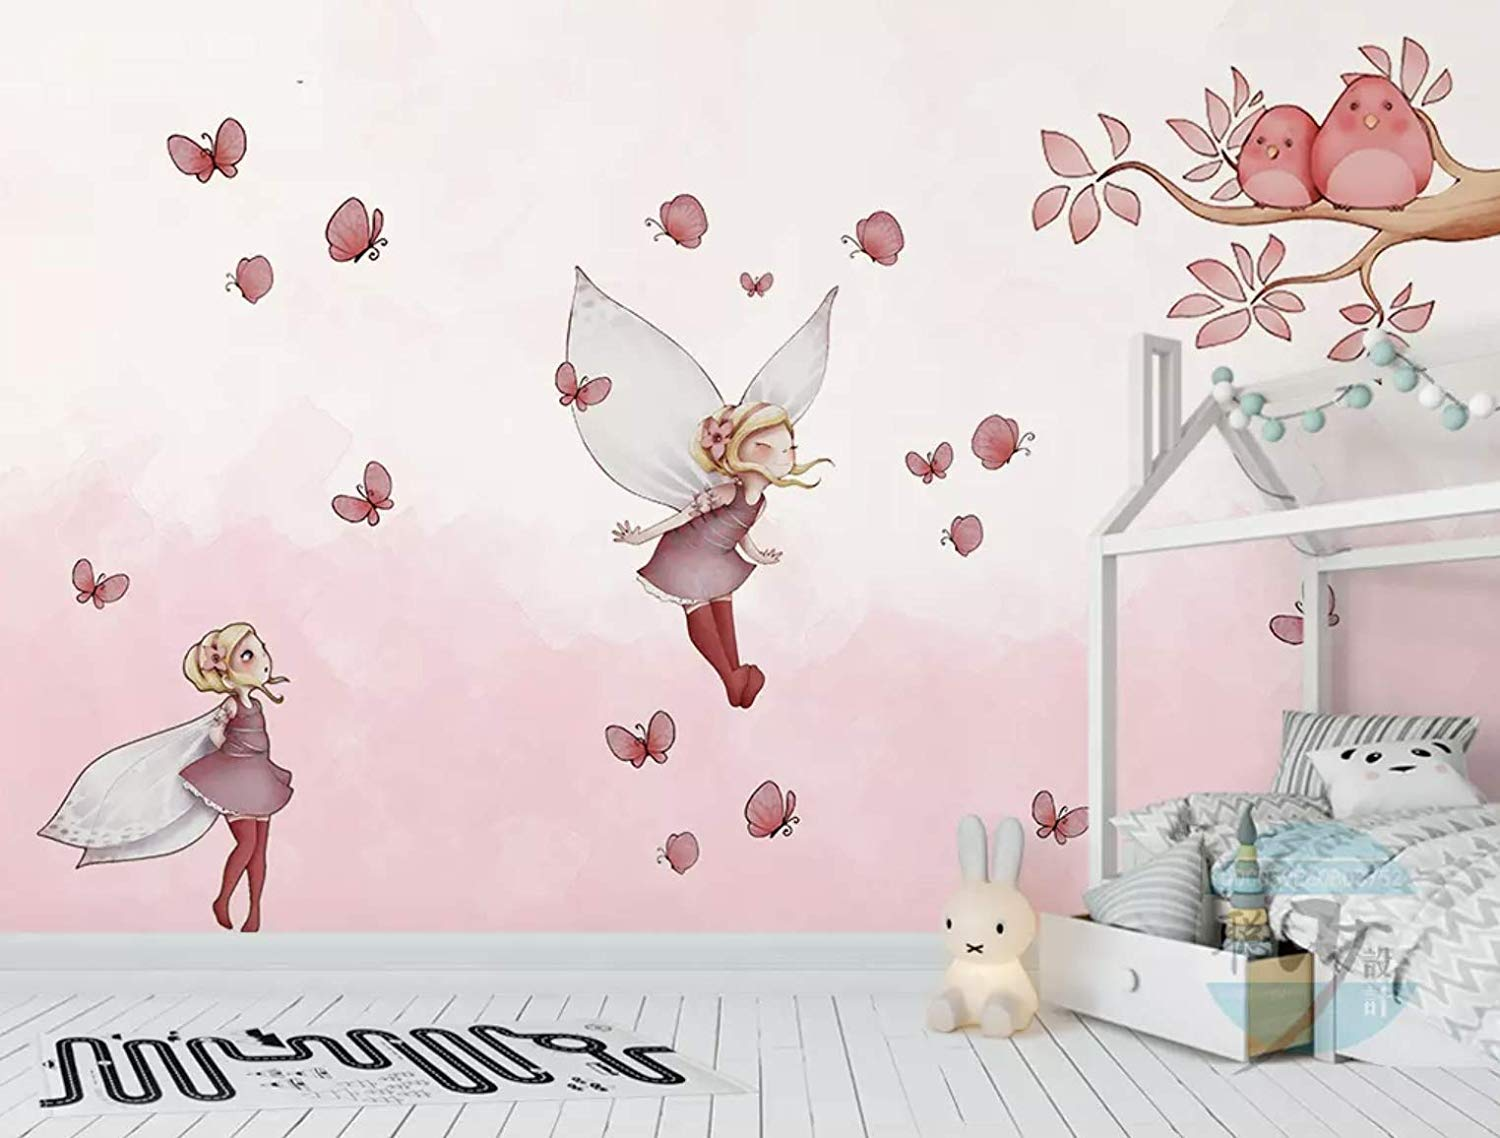 Murwall Kids Wallpaper Little Butterfly Girl Wall Mural - Wall , HD Wallpaper & Backgrounds